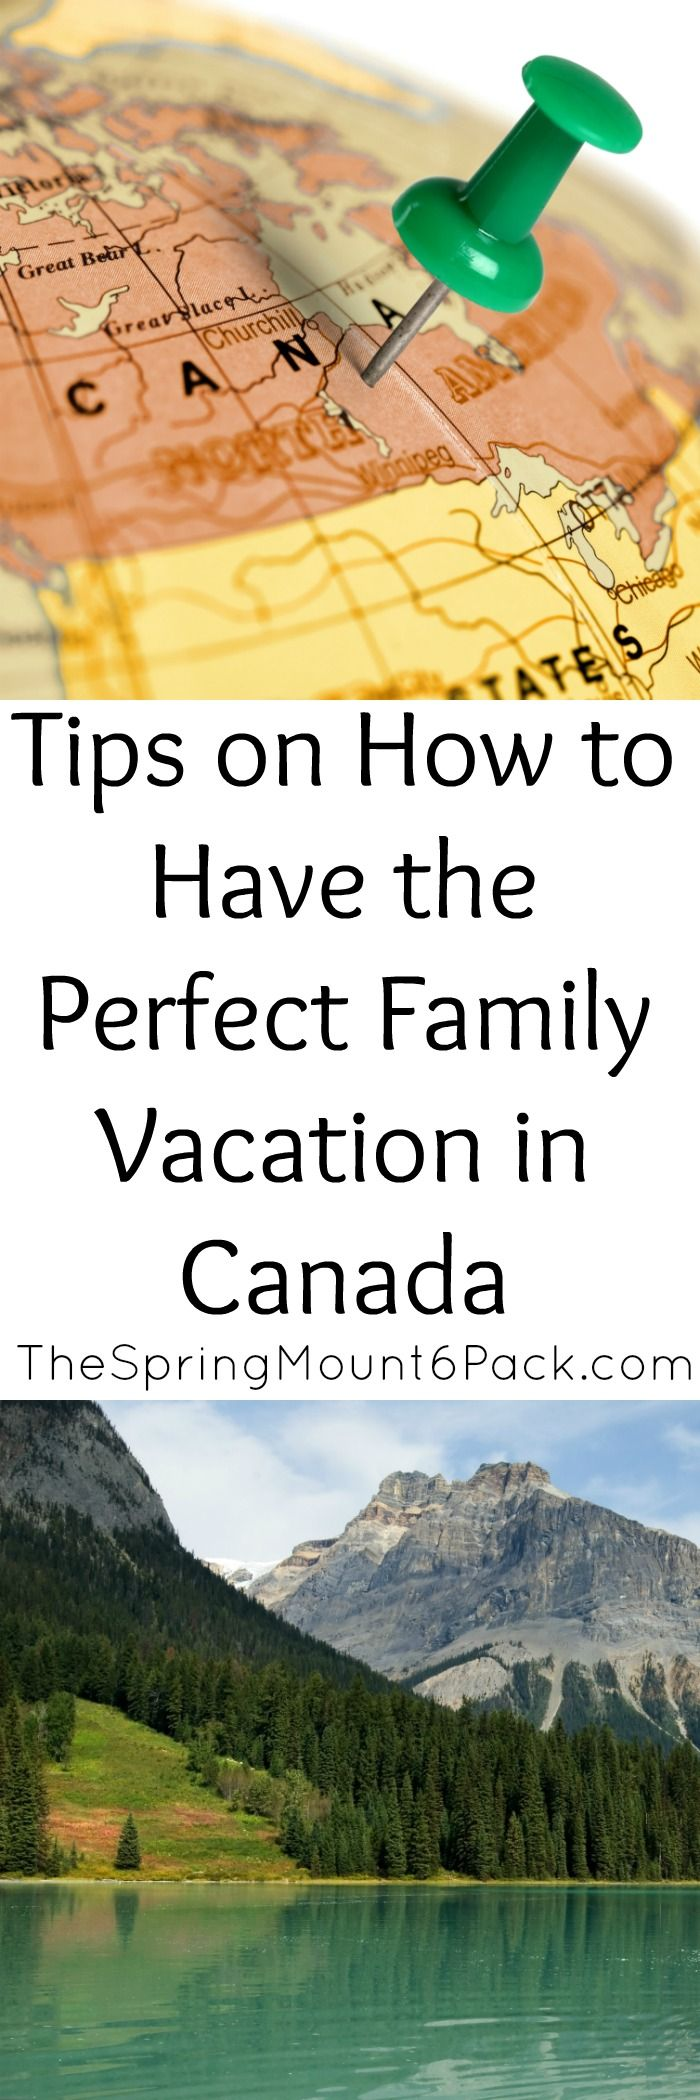 How To Have The Perfect Family Vacation In Canada